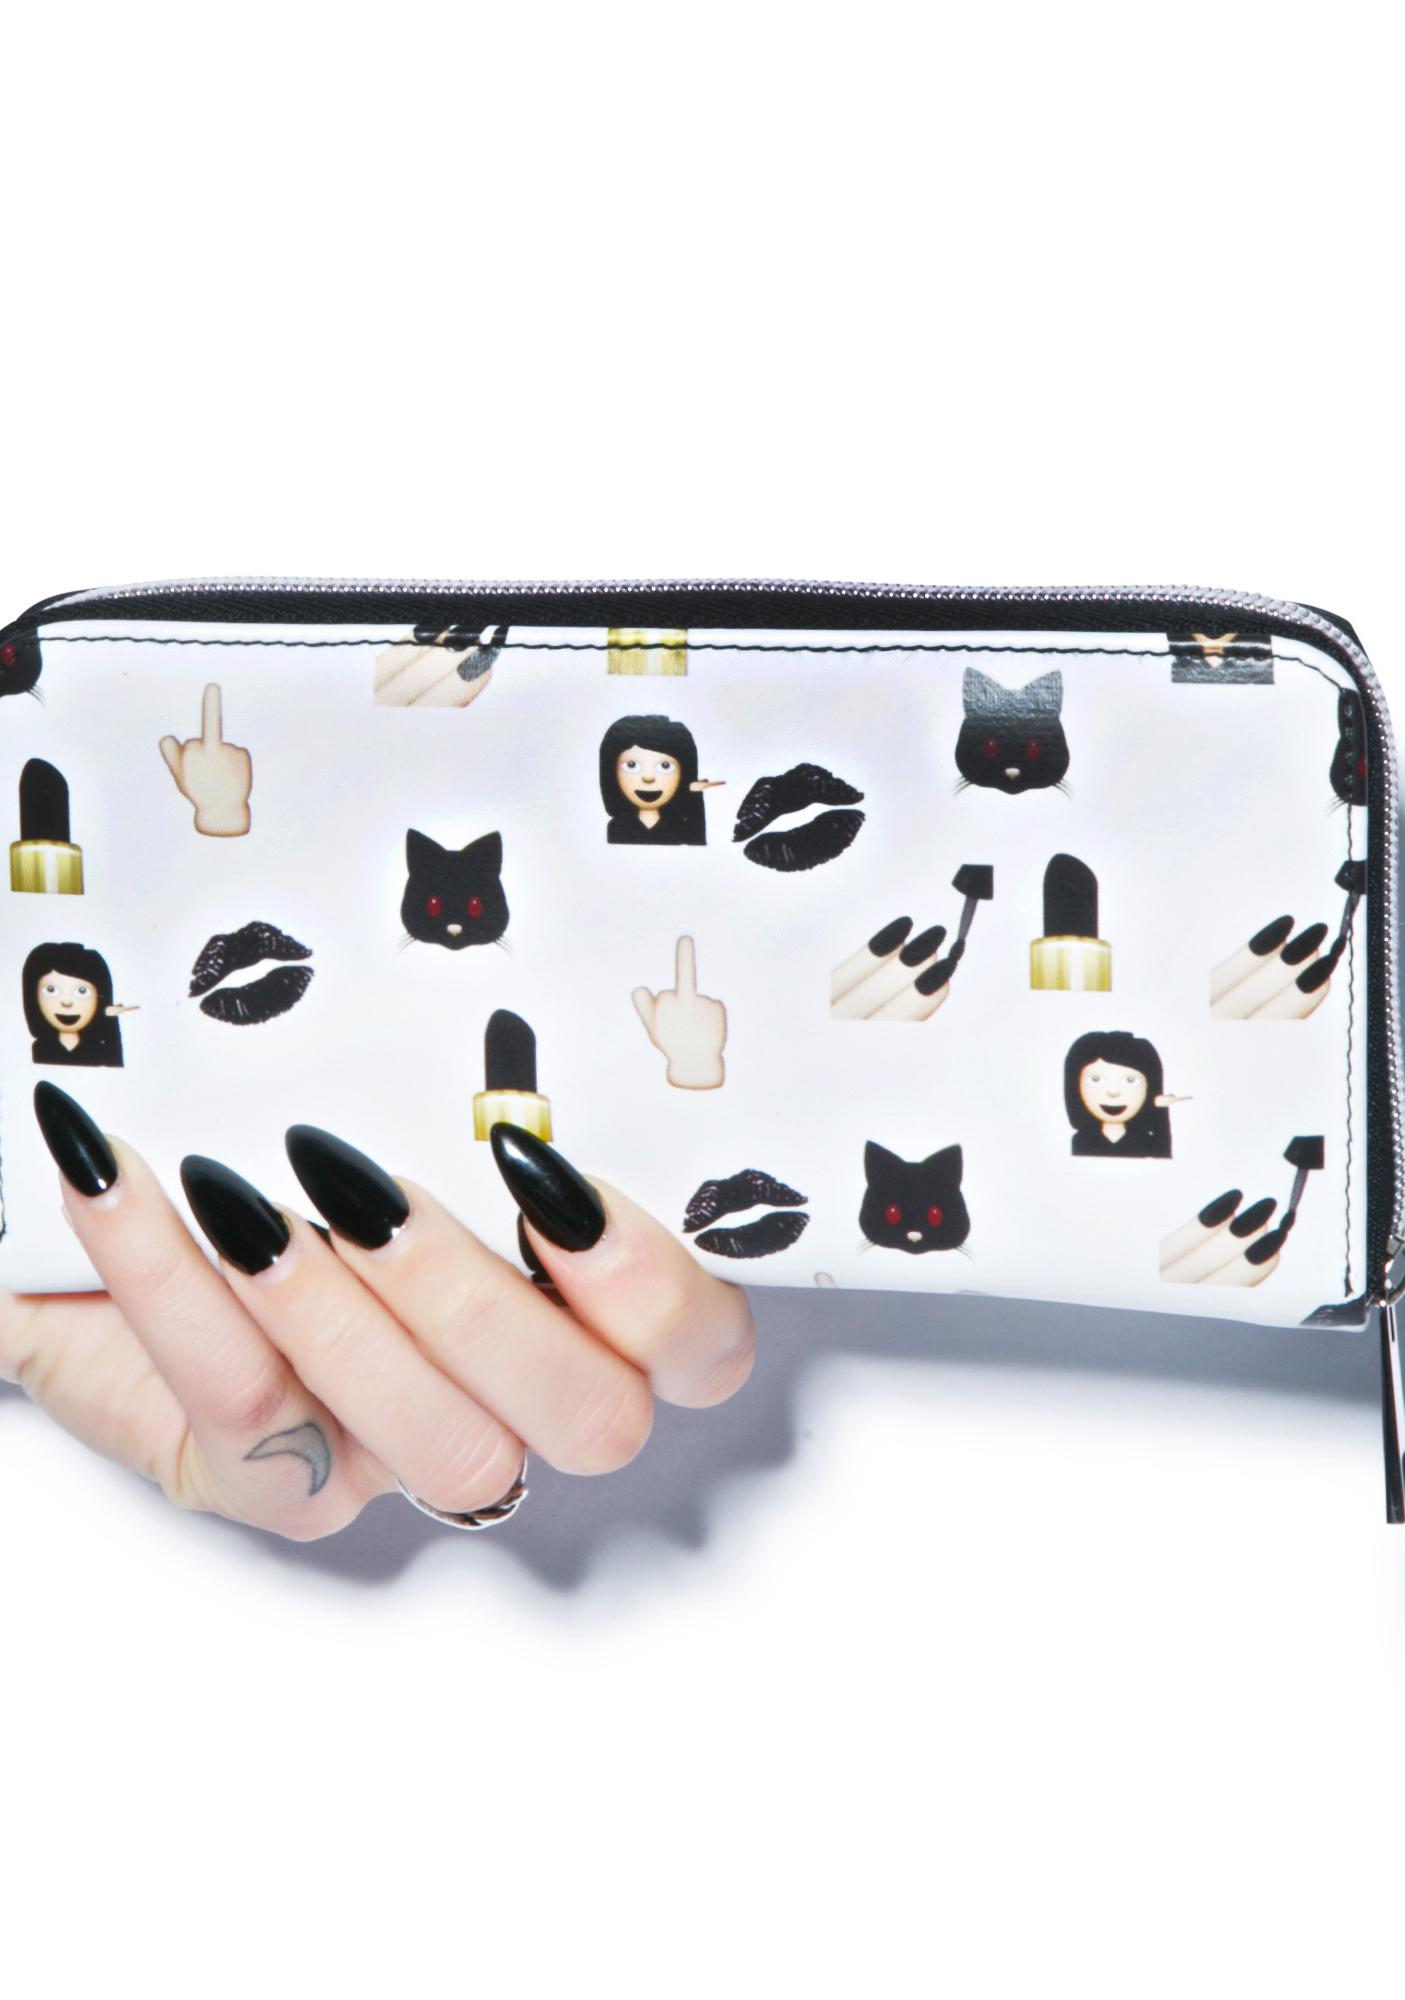 O Mighty Bad Bish Emoji Wallet